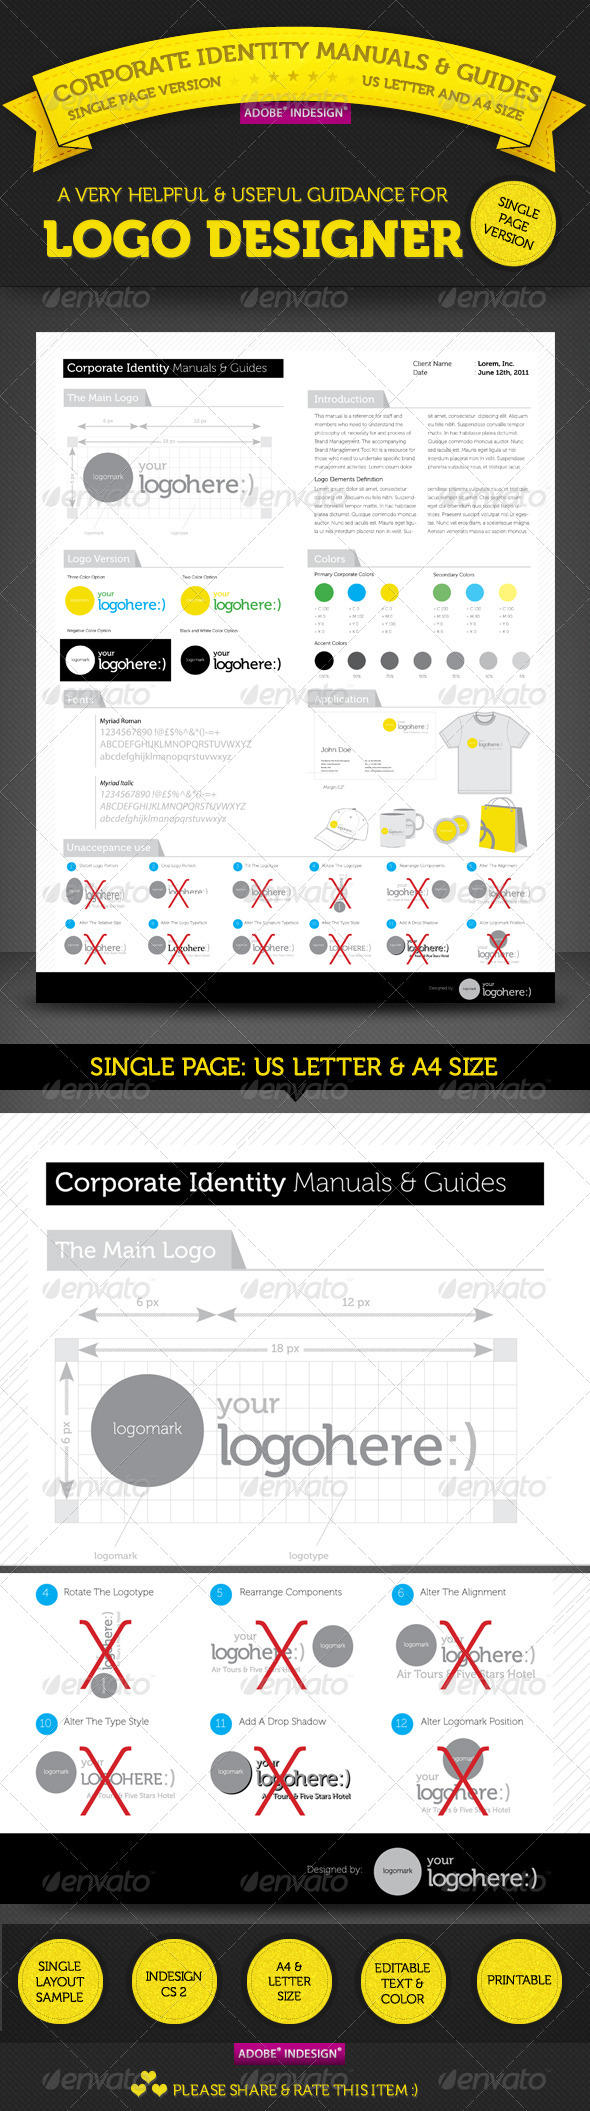 Brand Manuals & Guides - Single Page Version - Miscellaneous Print Templates